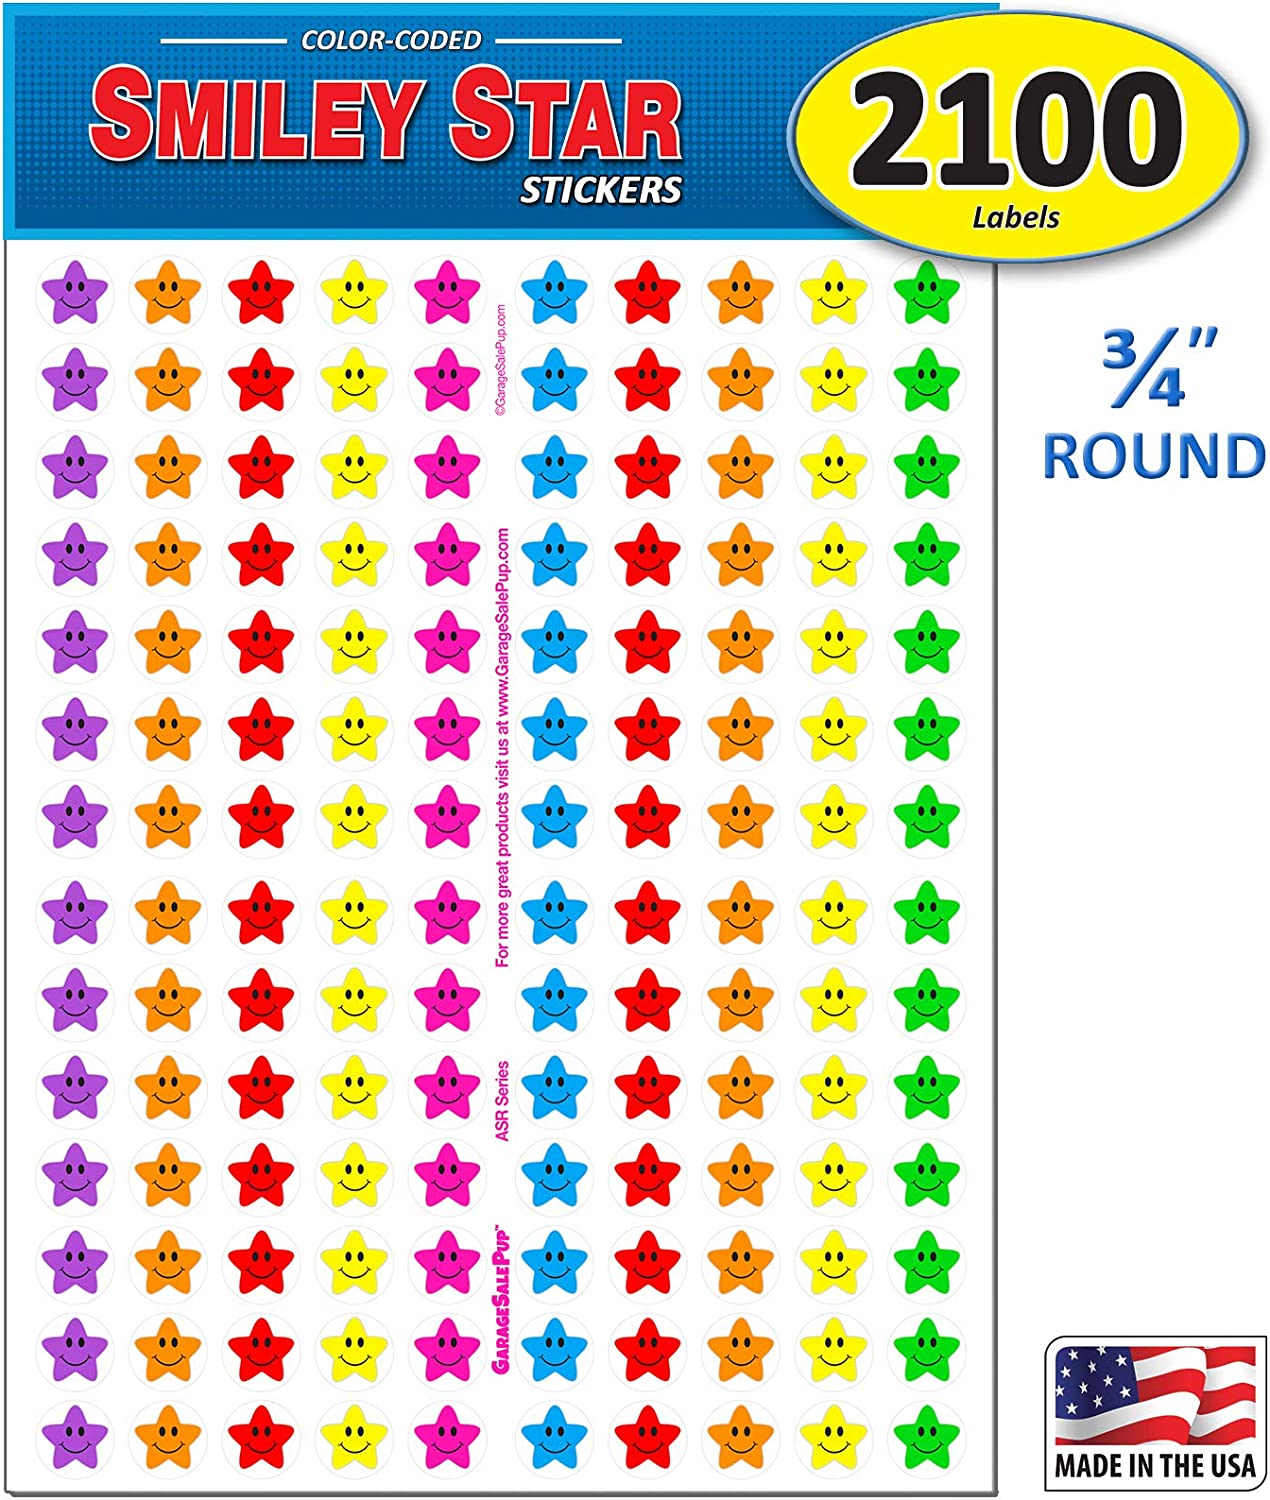 Pack of 2100 Happy Face Smiley Star Stickers, 3/4 inch, 7 Bright Neon Colors, Great for Teachers & Classrooms!…